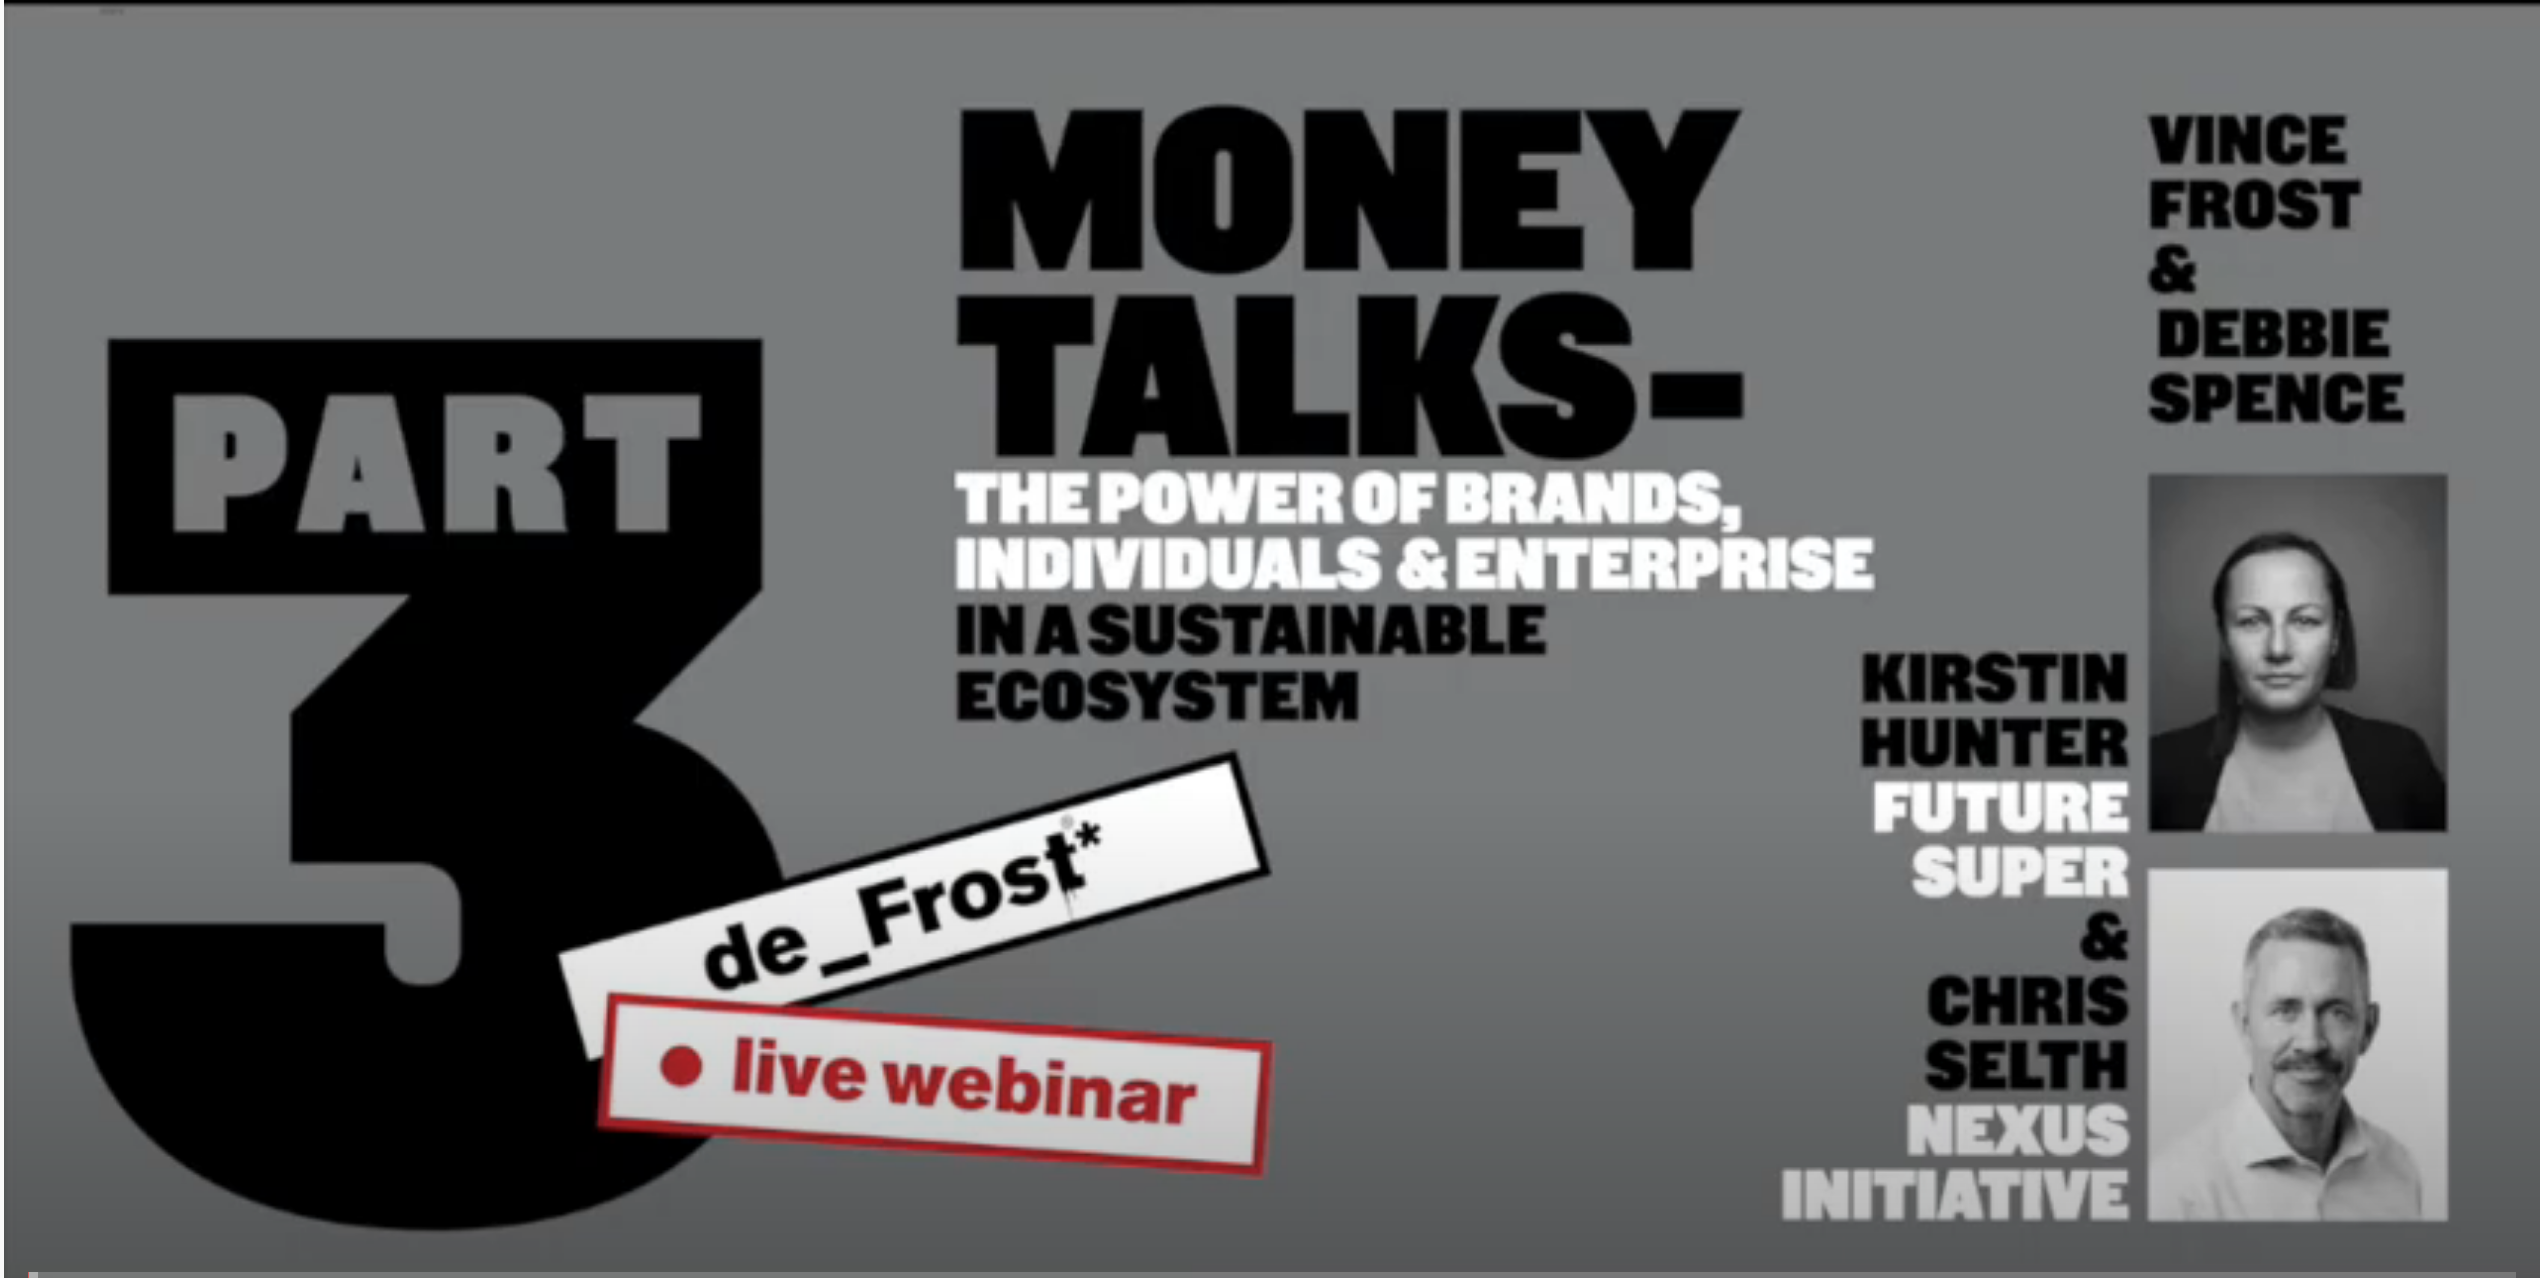 Grey thumbnail for the 'Money Talk: The Power of Brands, Individuals & Enterprise' video